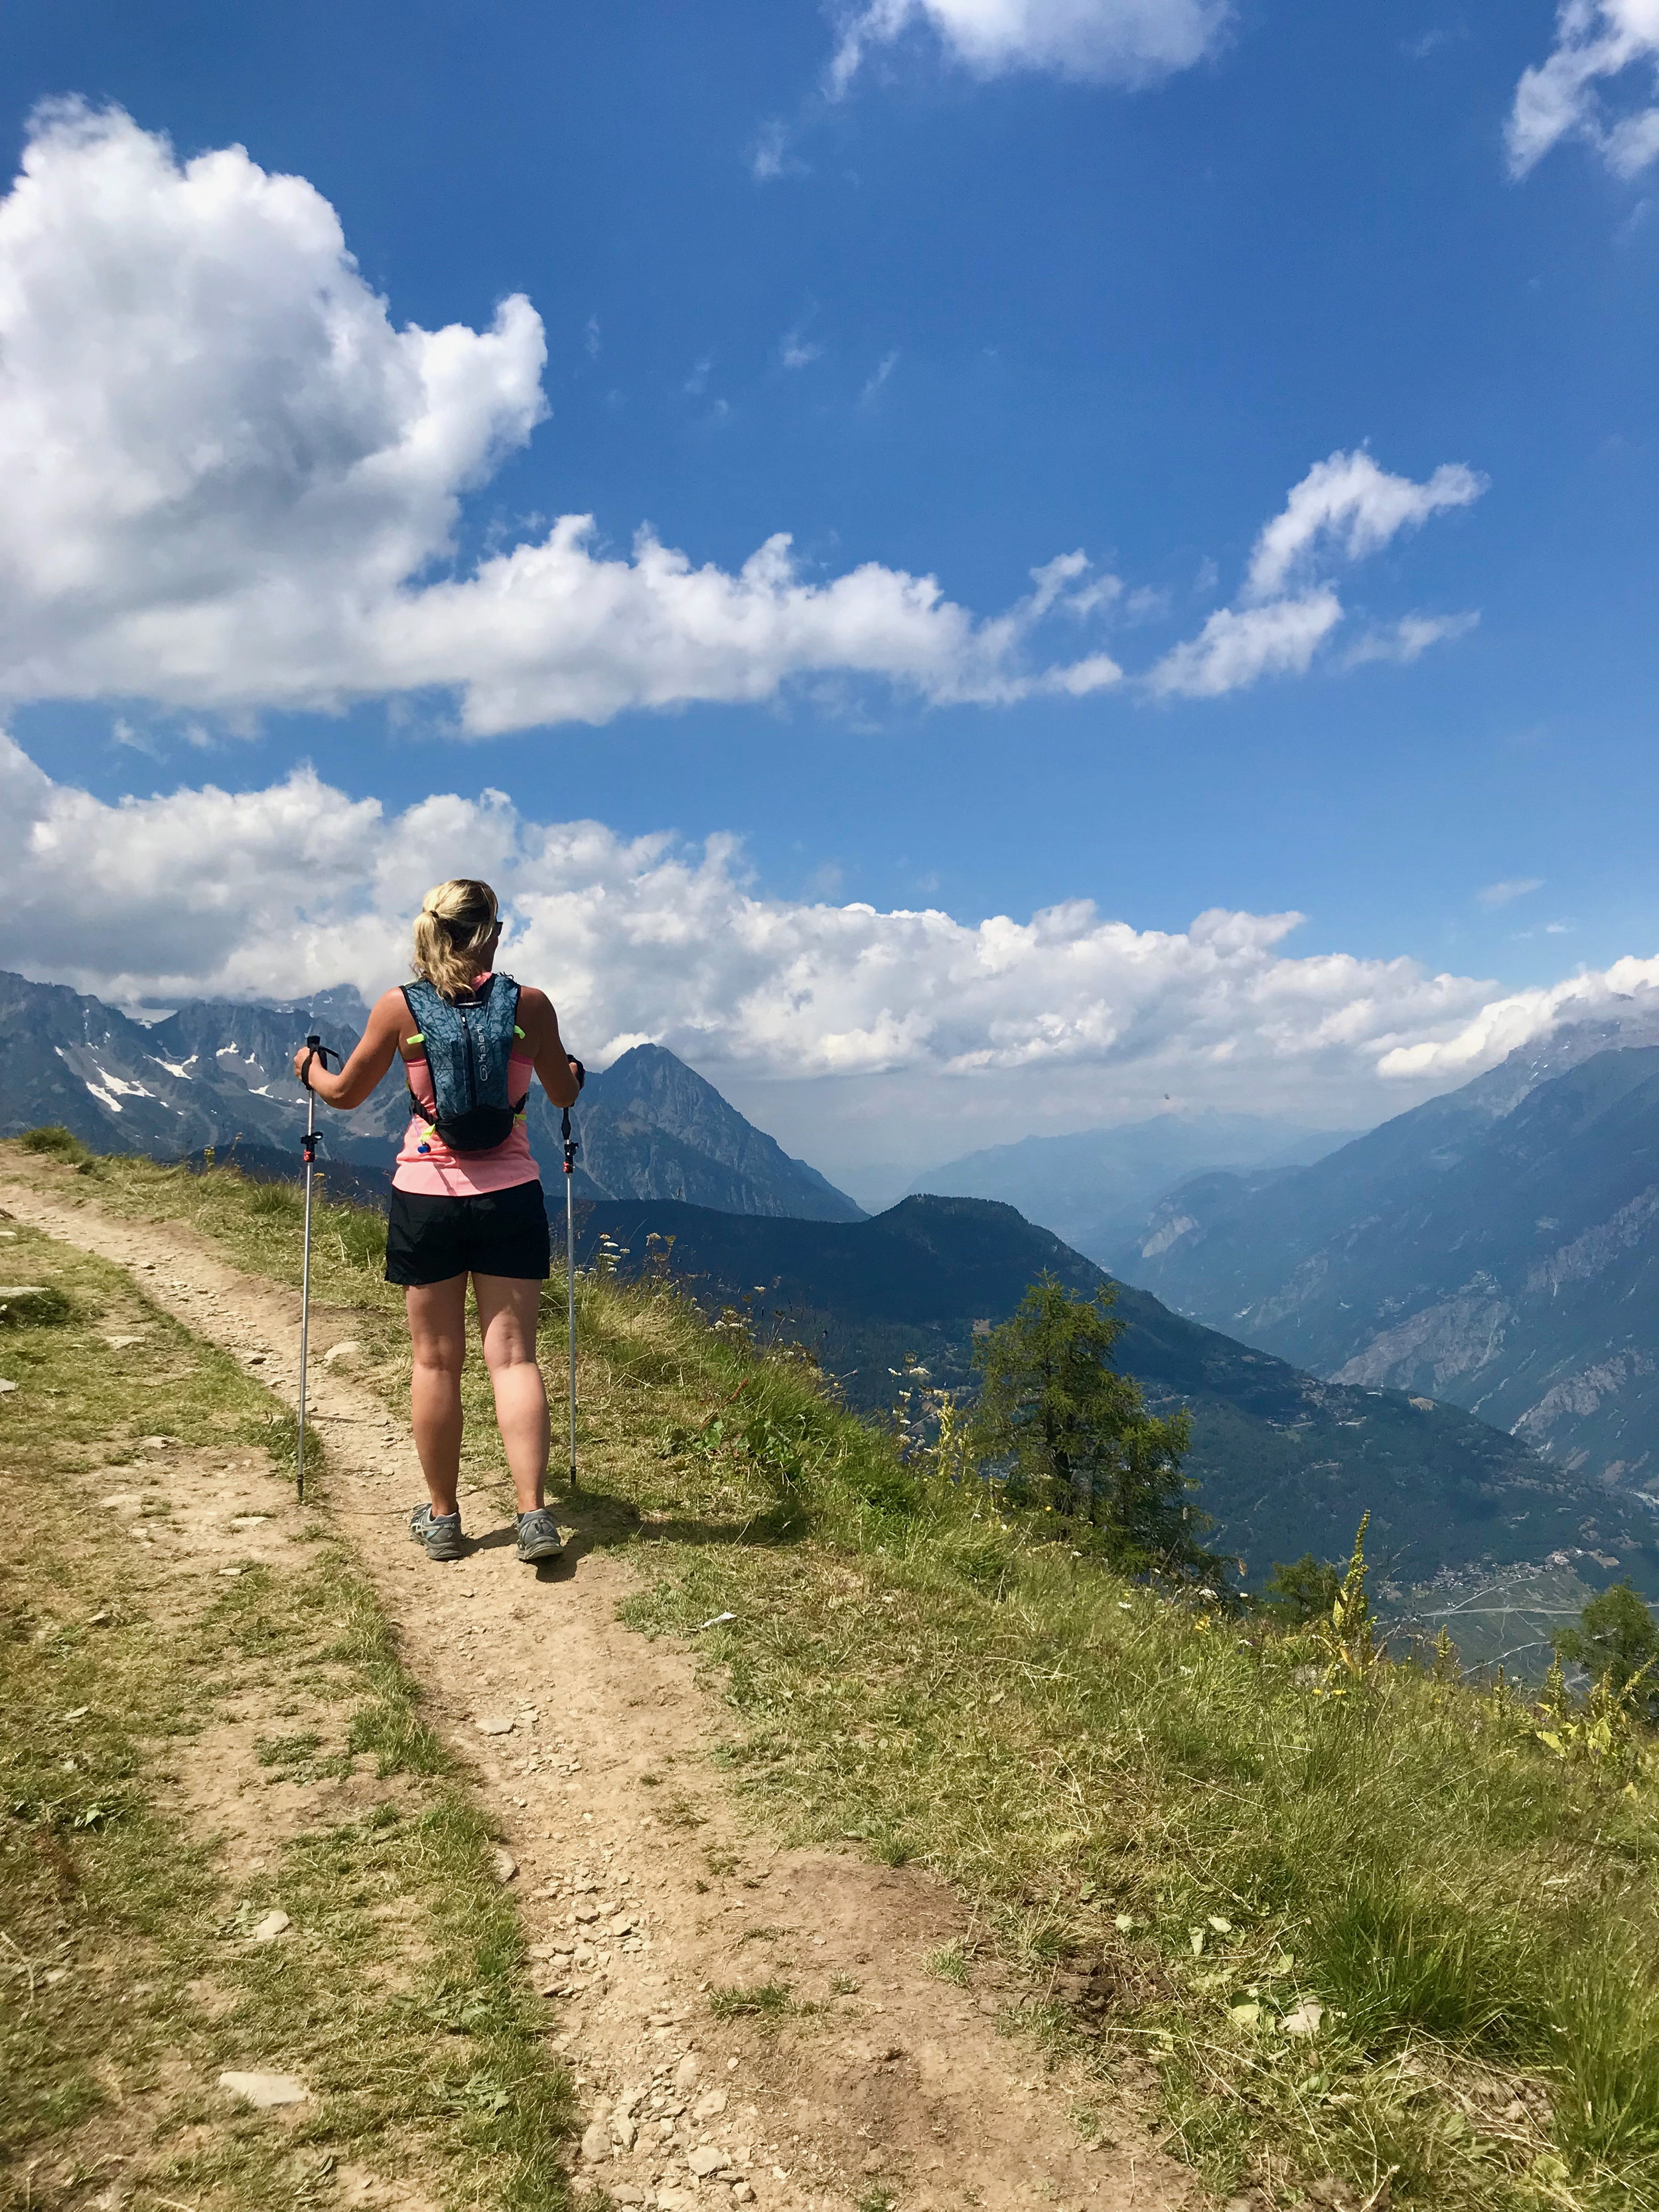 Quechua 10-litre trail running backpack, purchased Decathlon